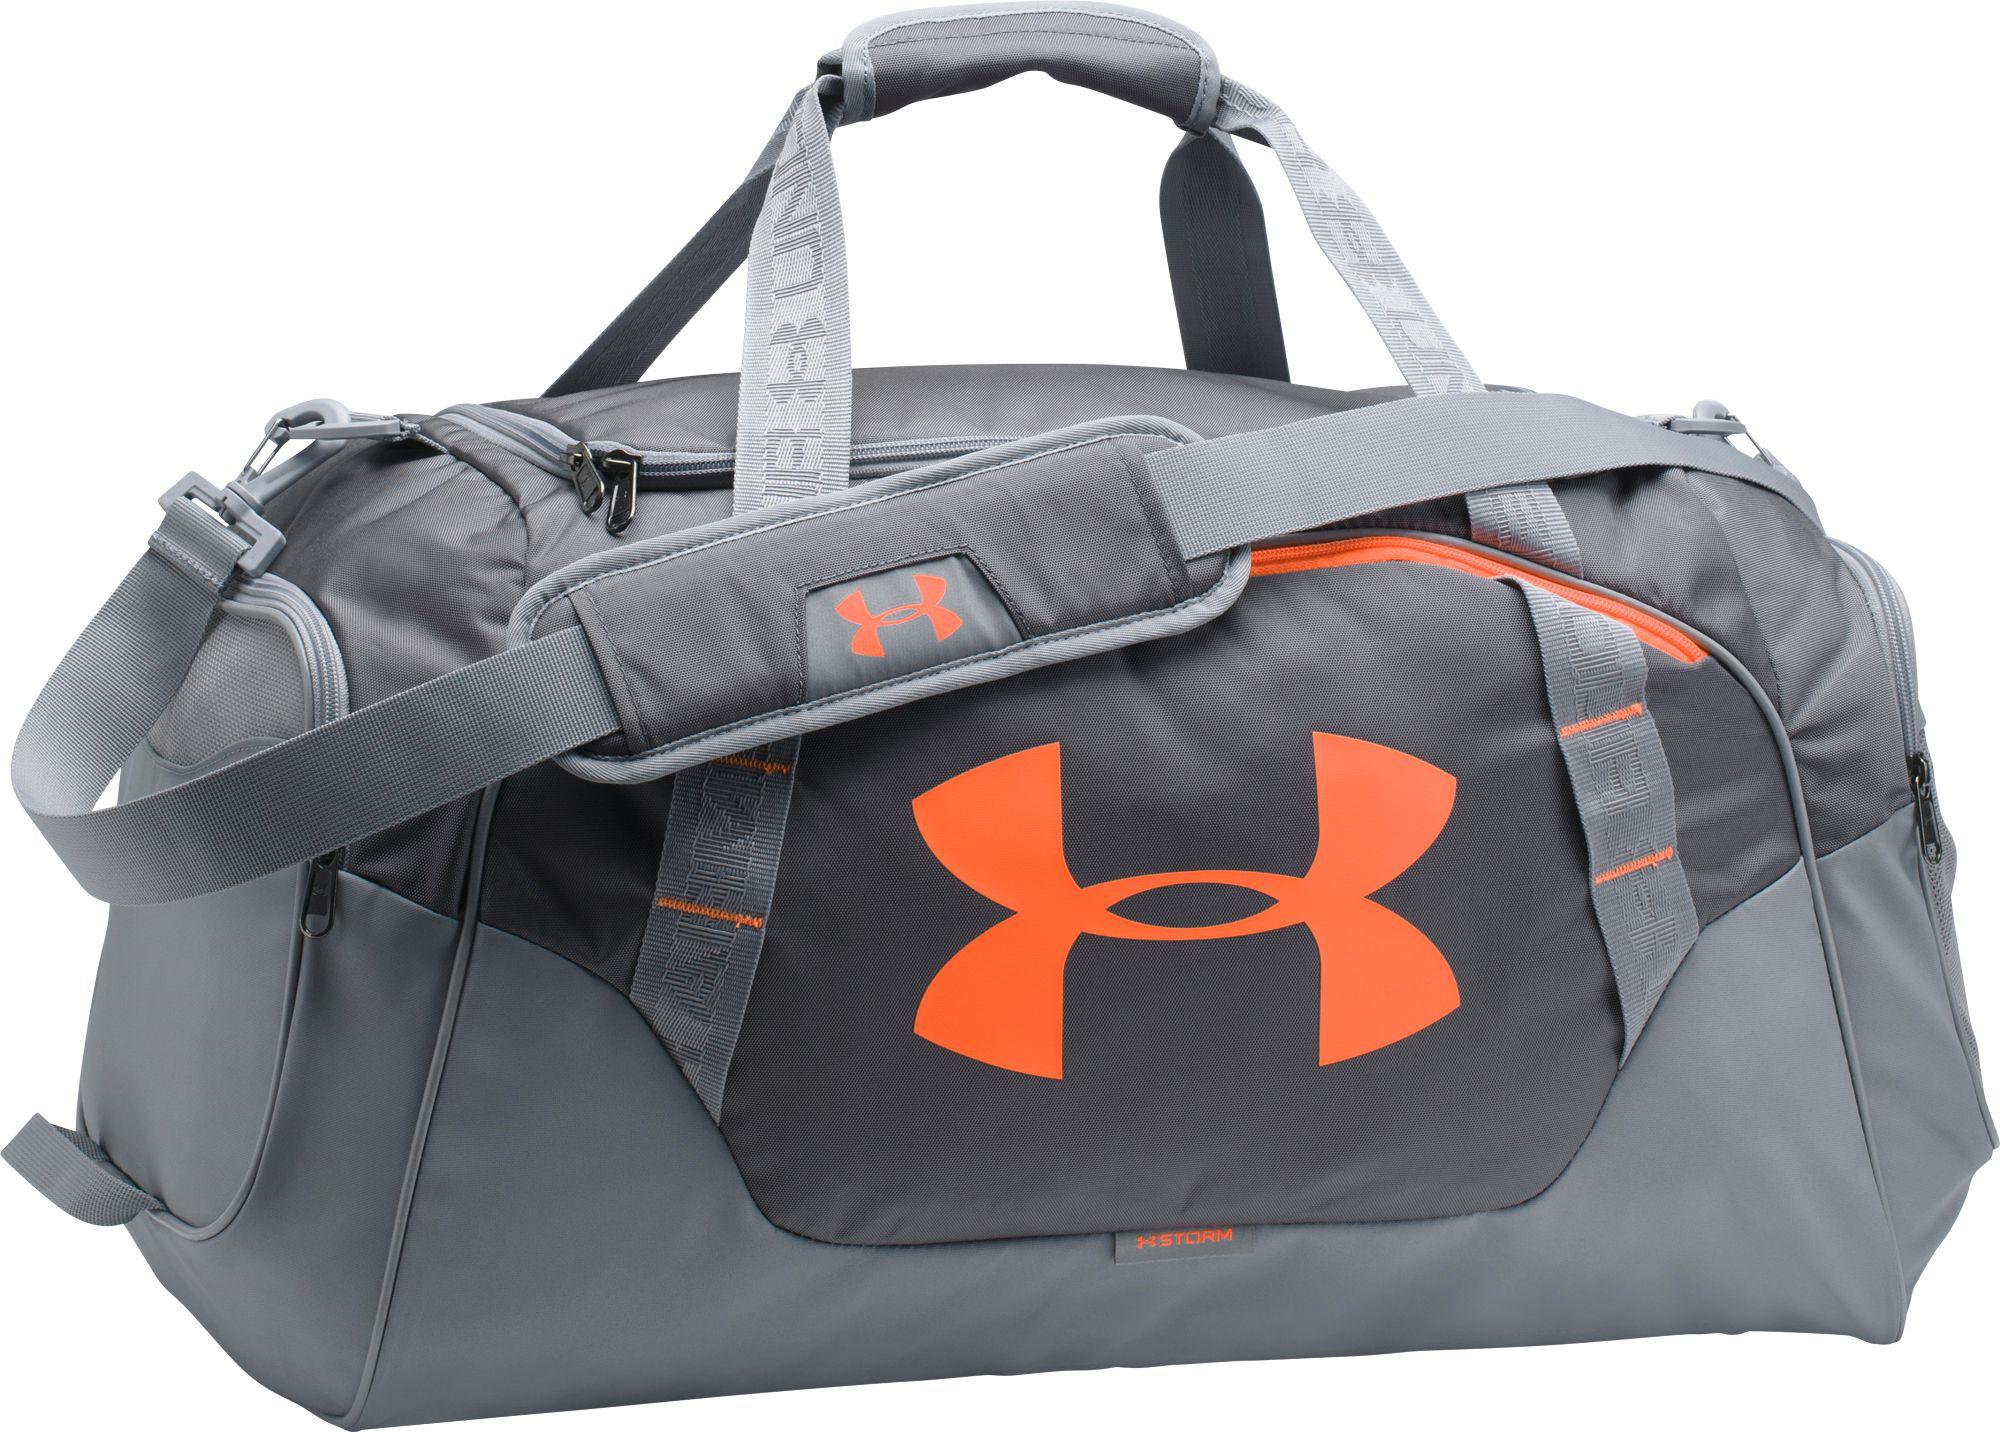 2e995a11a1 Lyst - Under Armour Undeniable 3.0 Medium Duffle Bag in Gray for Men